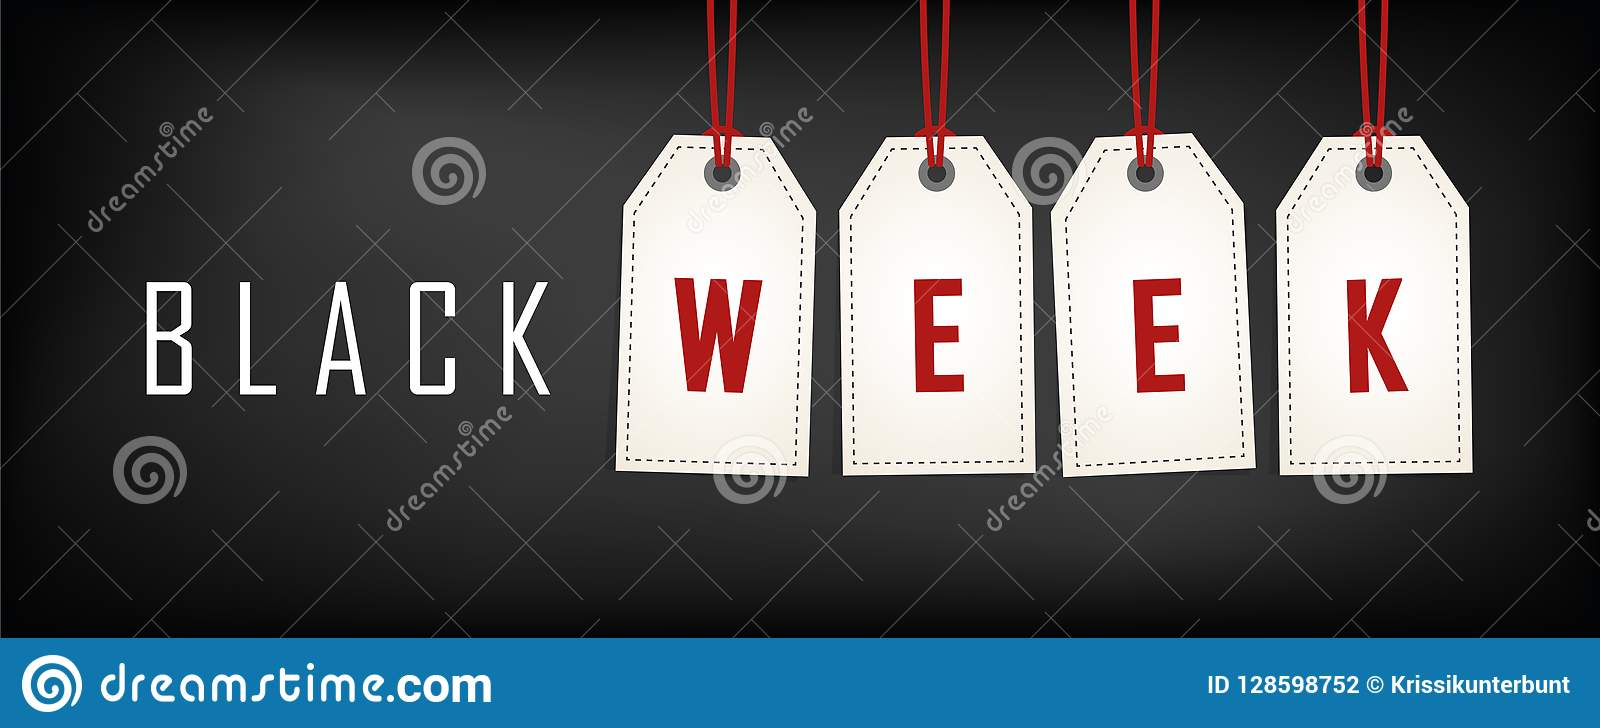 Black Week Sale Black Week Sale White Tags Advertising On Black Background Stock